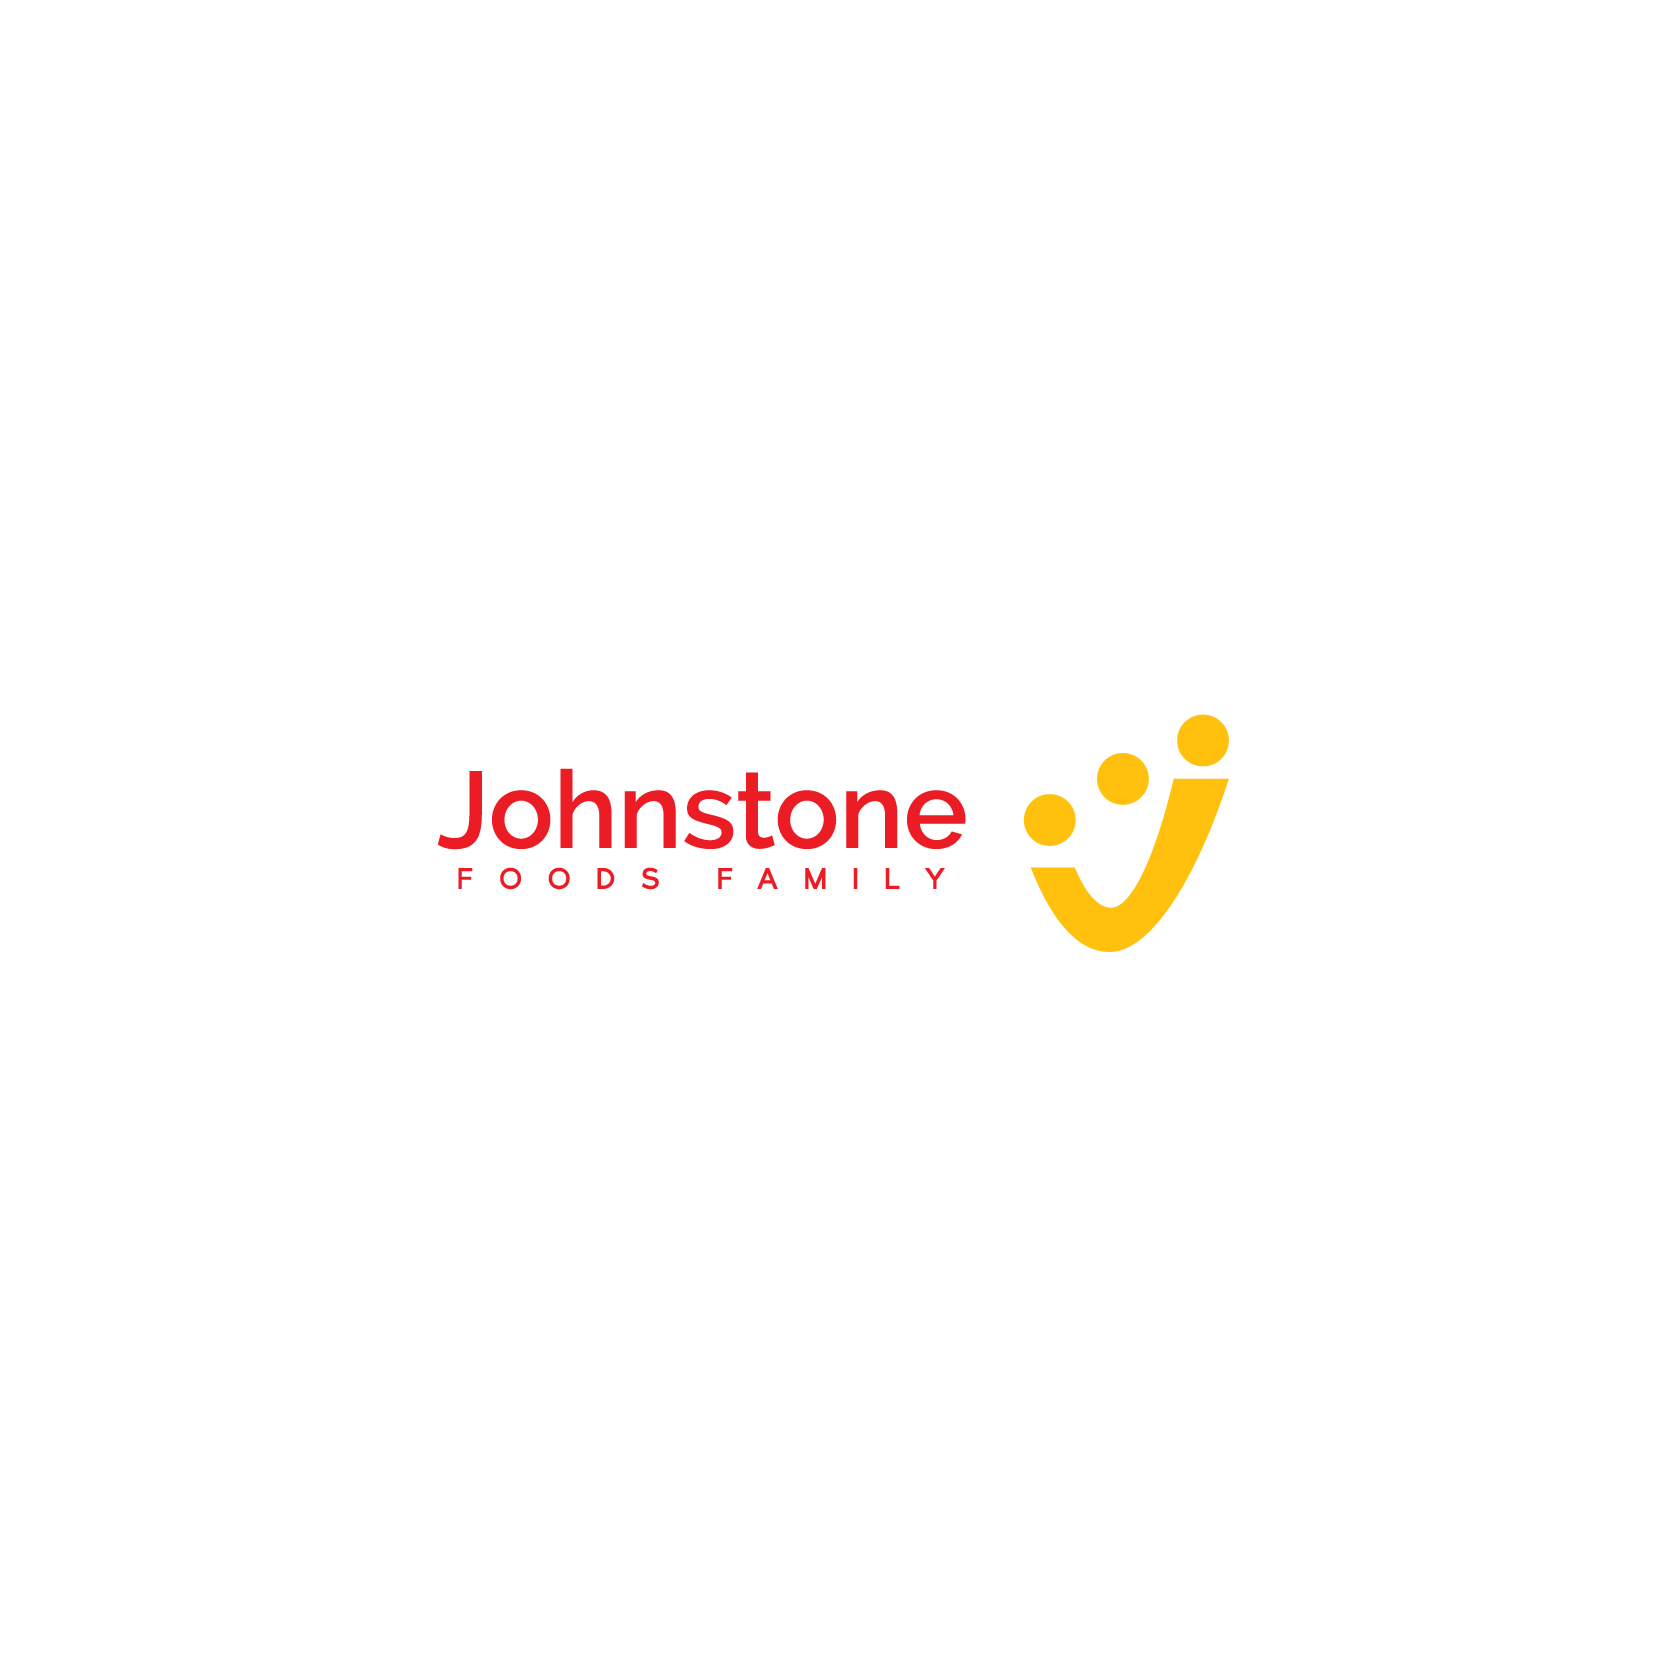 johnstone foods mcdonald s shift manager job listing in johnstone foods mcdonald s restaurant group is seeking experienced shift managers who understand the concept of running a multi million dollar business not